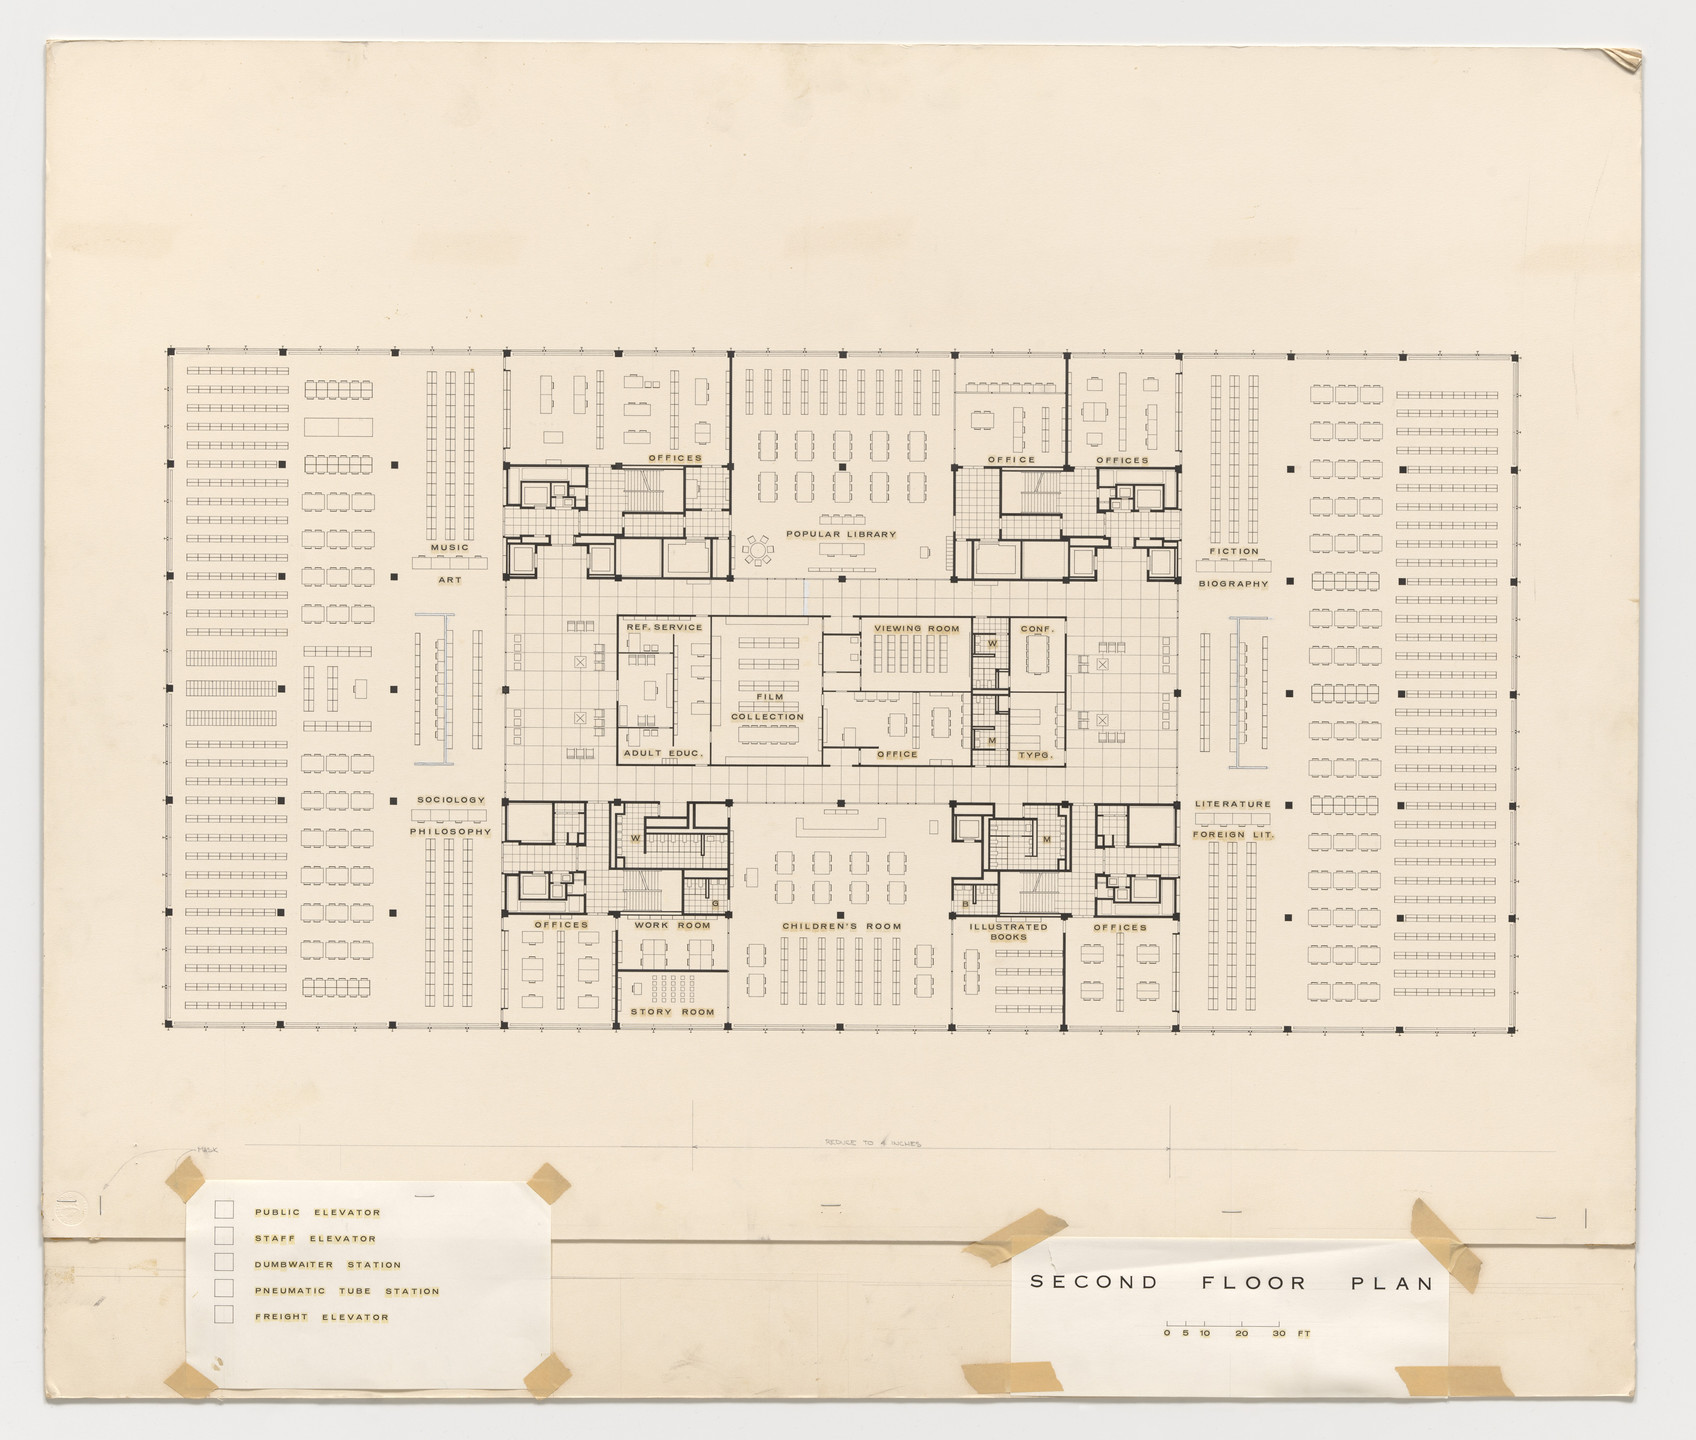 Ludwig Mies van der Rohe. Martin Luther King Jr. Memorial Library, Washington, D.C. (Second floor plan). 1965-1968